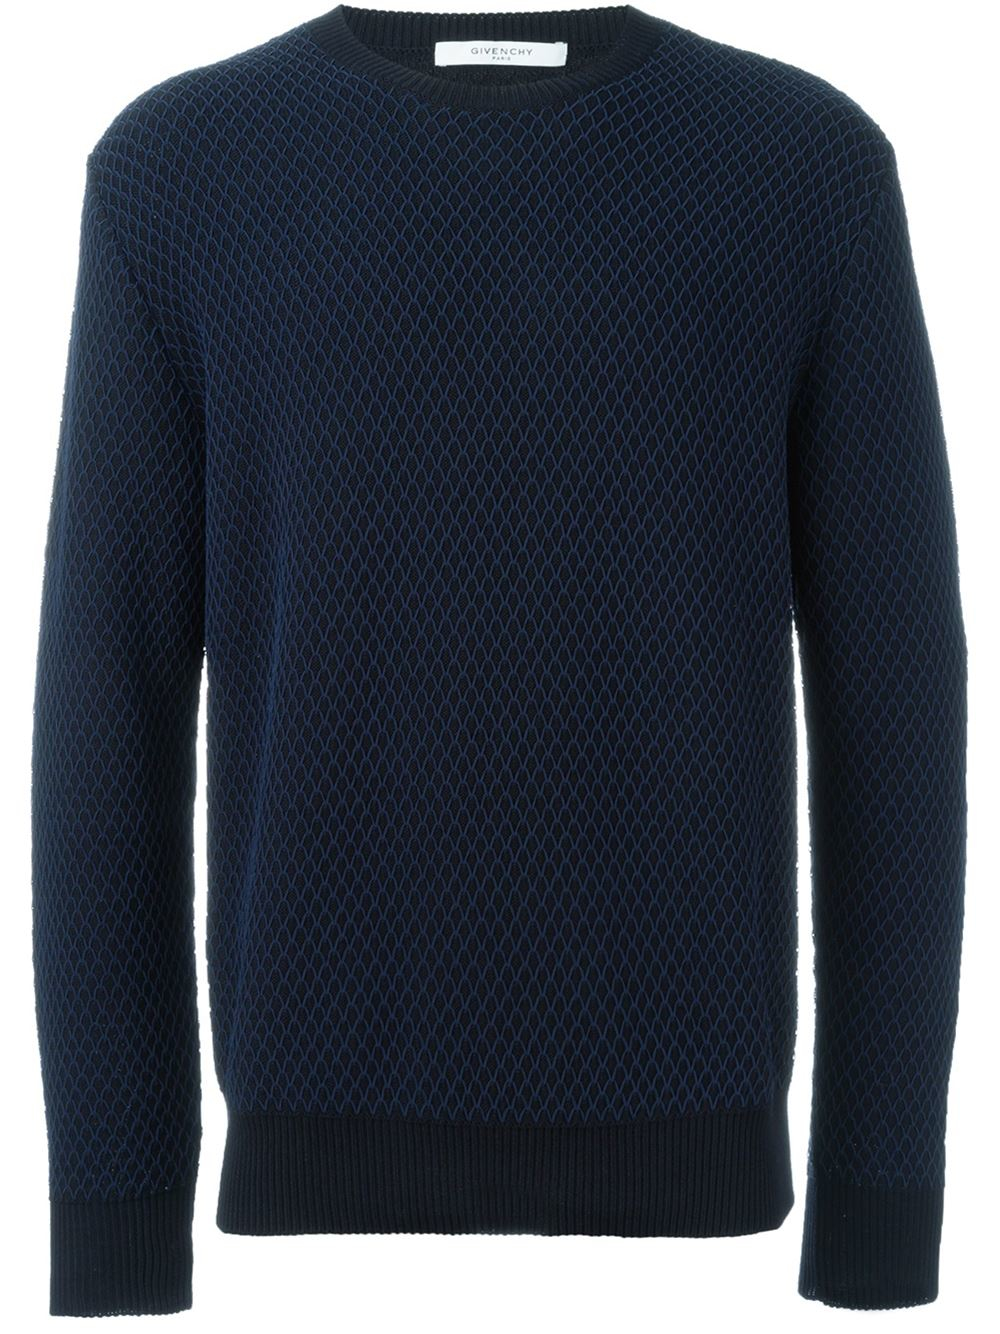 givenchy crew neck pullover in blue for men save 30 lyst. Black Bedroom Furniture Sets. Home Design Ideas